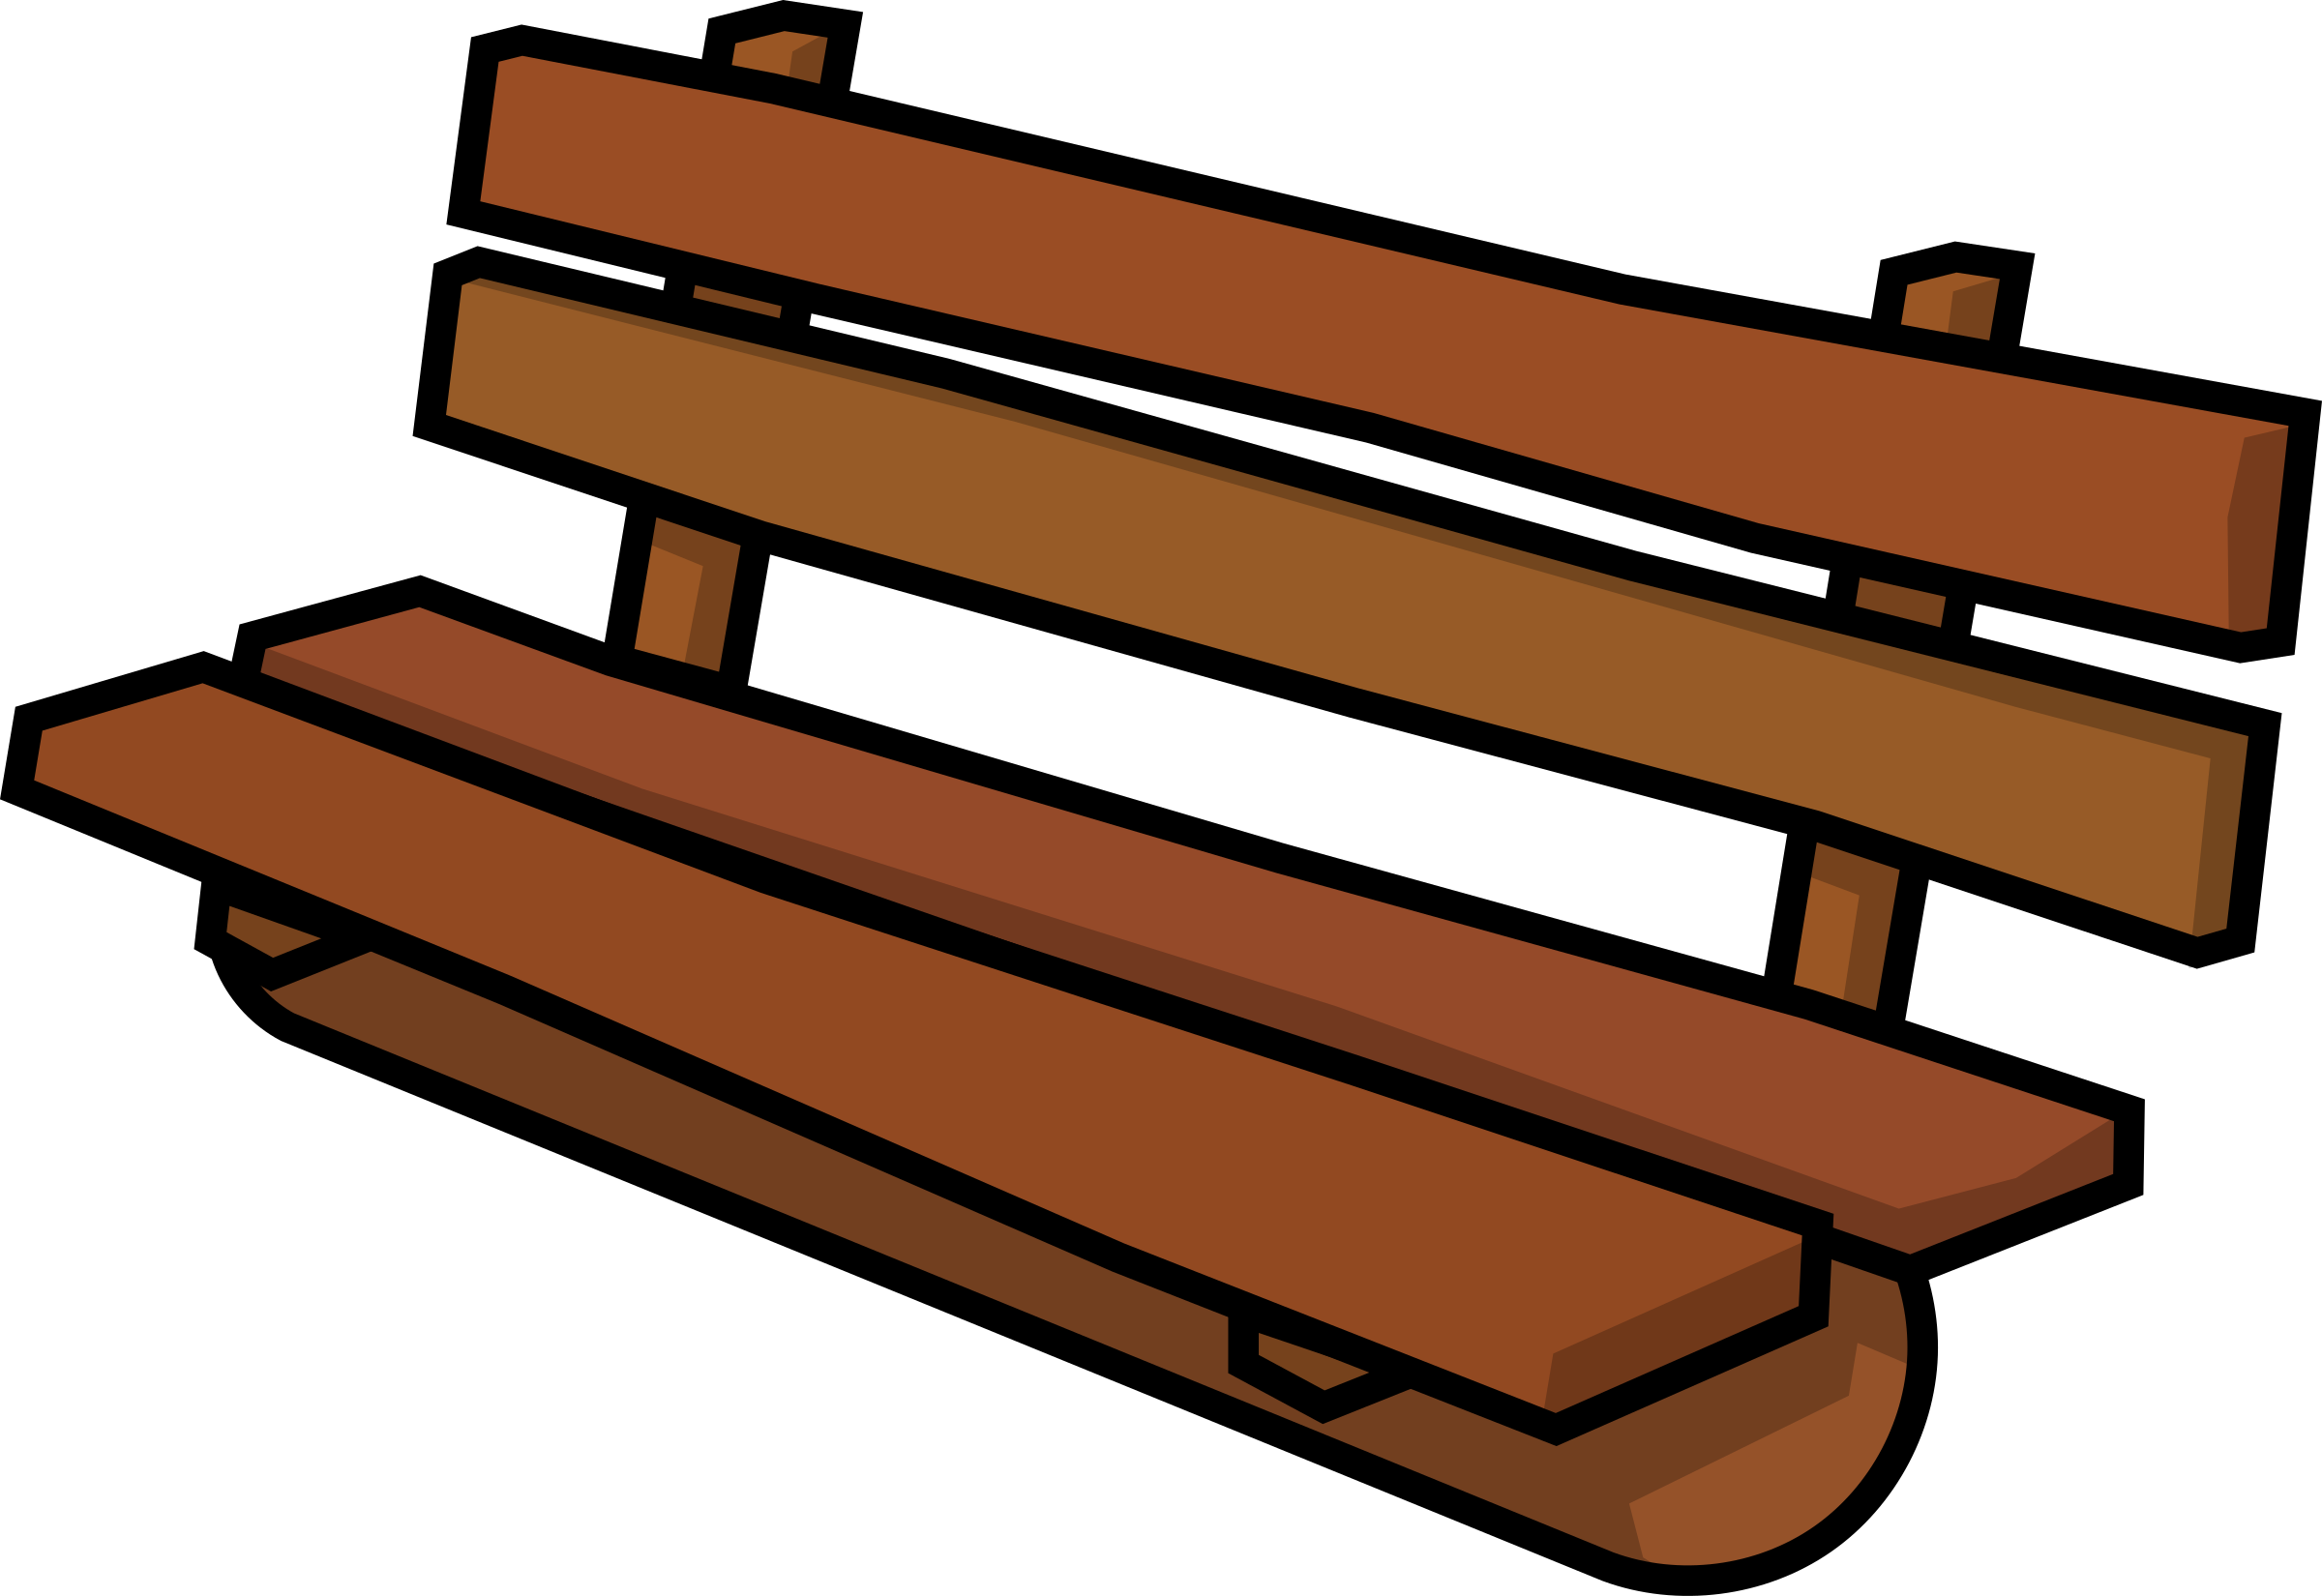 Bench by raemi